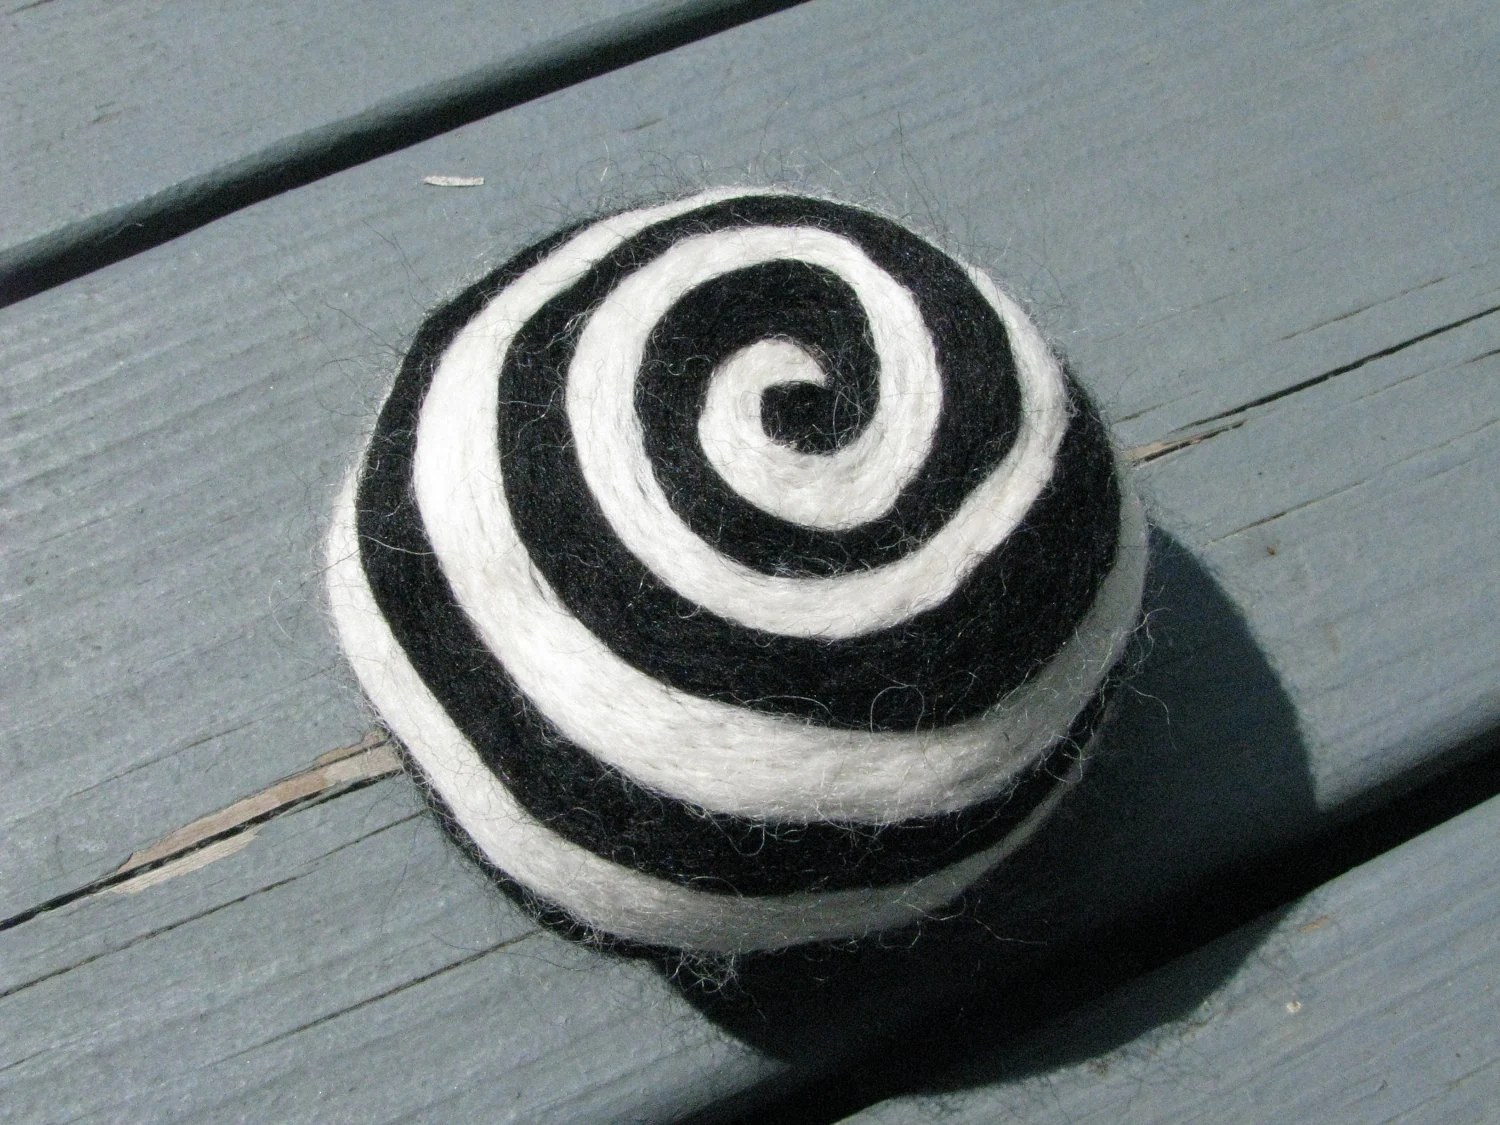 One multi-colored felted pin-cushion, Black and White - Dreamcrafter